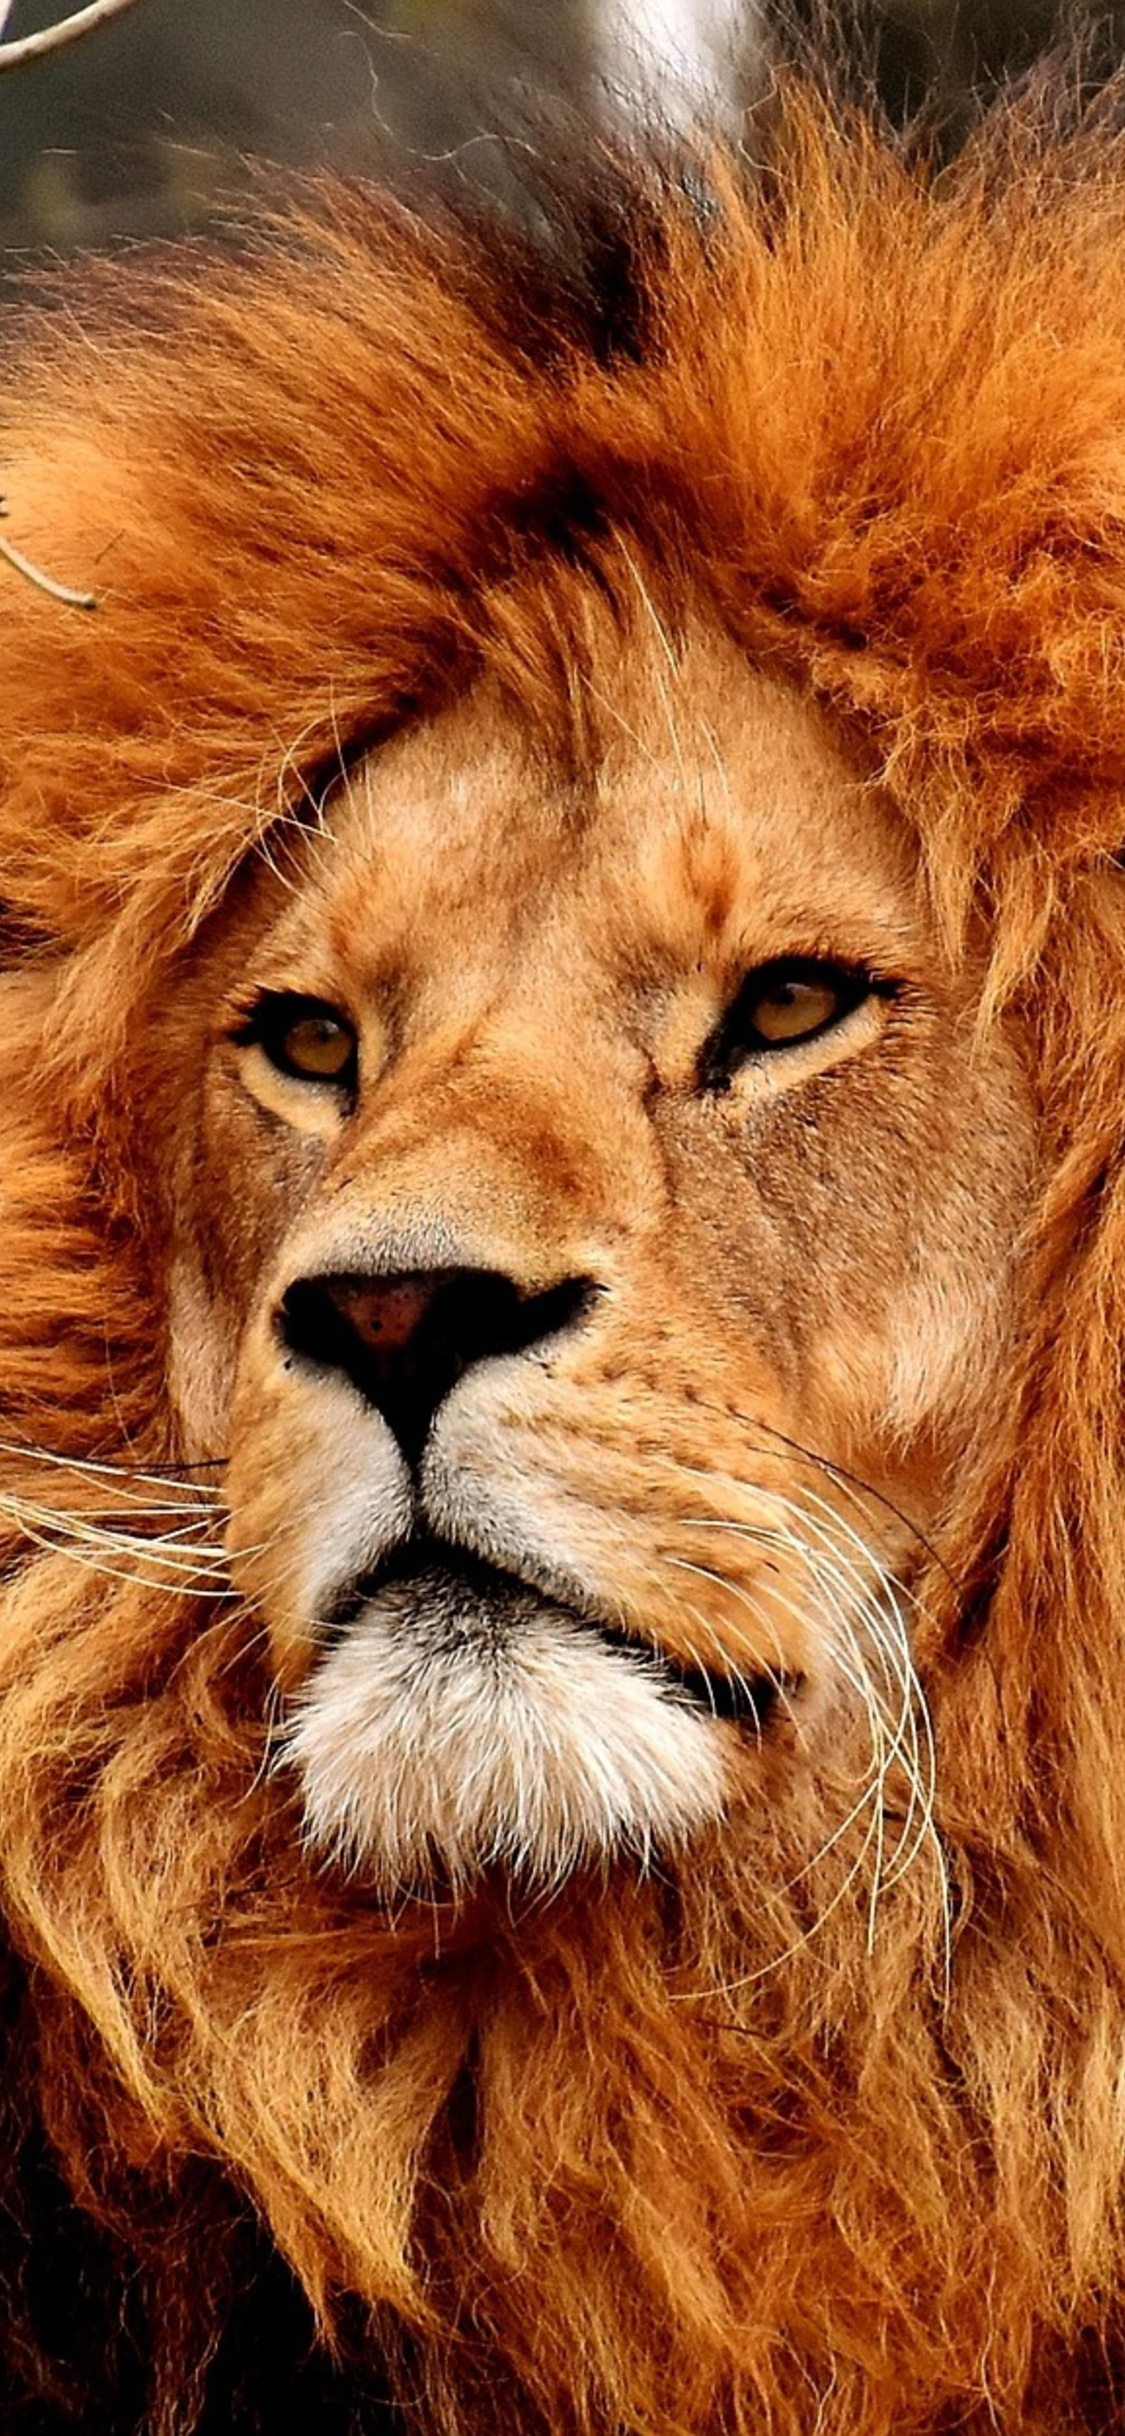 1125x2436 Old Lion Iphone Xs Iphone 10 Iphone X Hd 4k